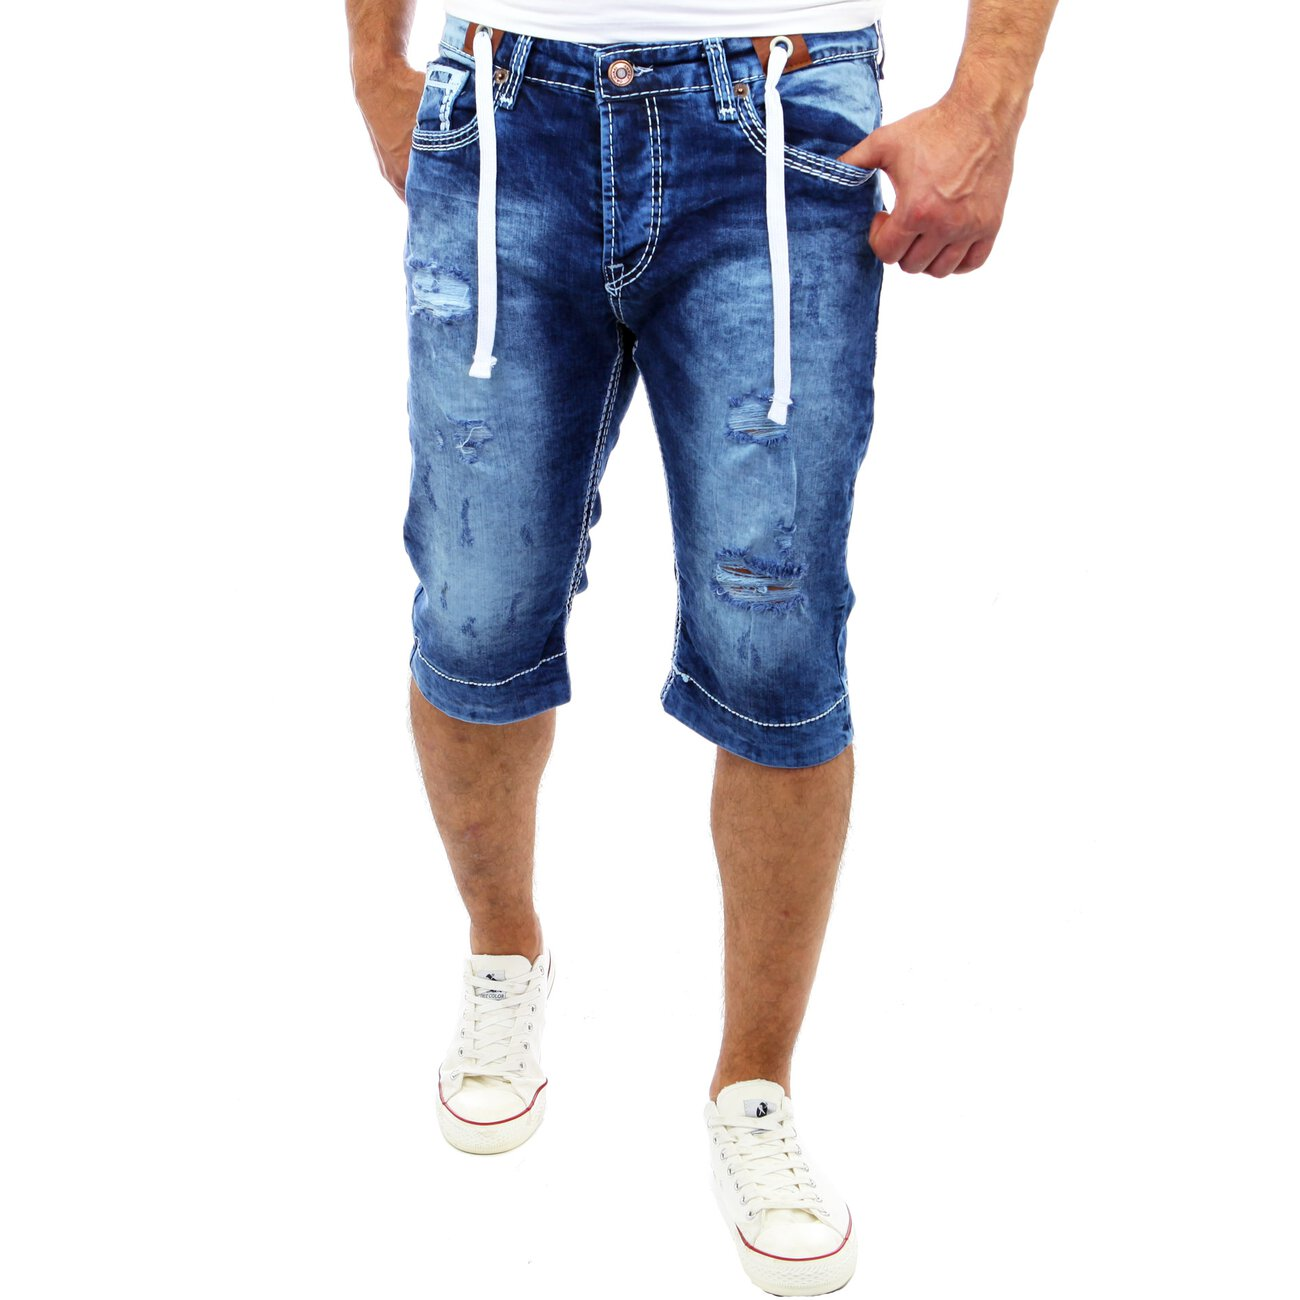 herren jeans shorts dicke naht denim kurze hose bermuda capri rx 4058. Black Bedroom Furniture Sets. Home Design Ideas